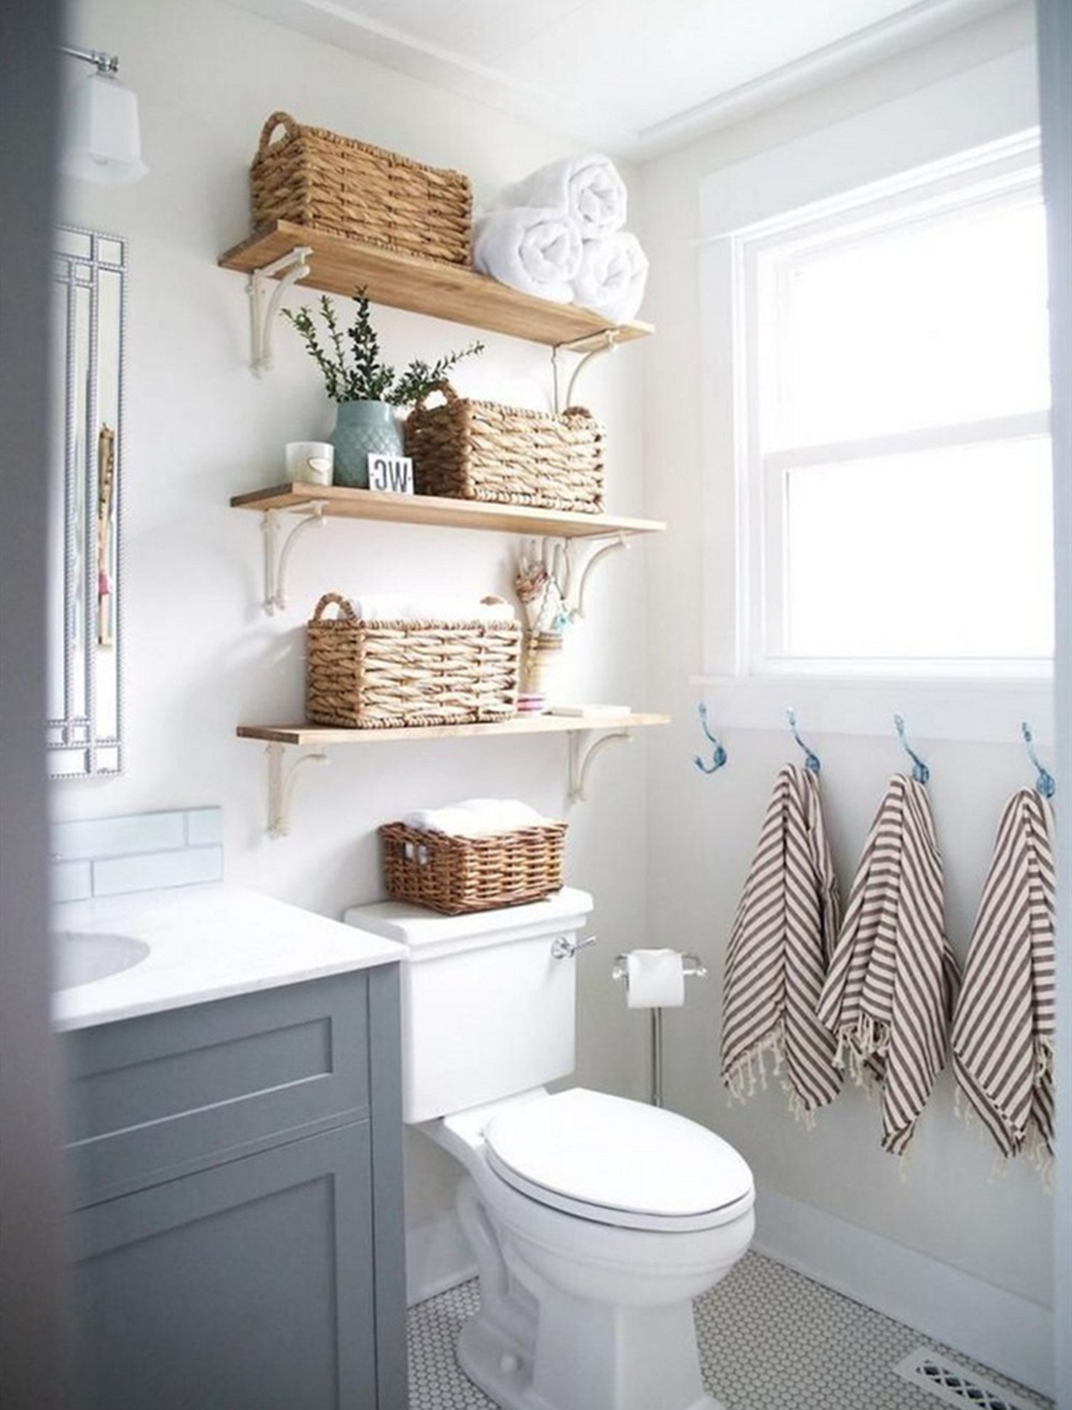 Bathroom Decoration- Know the Benefits of Installing a Metal Shelf.